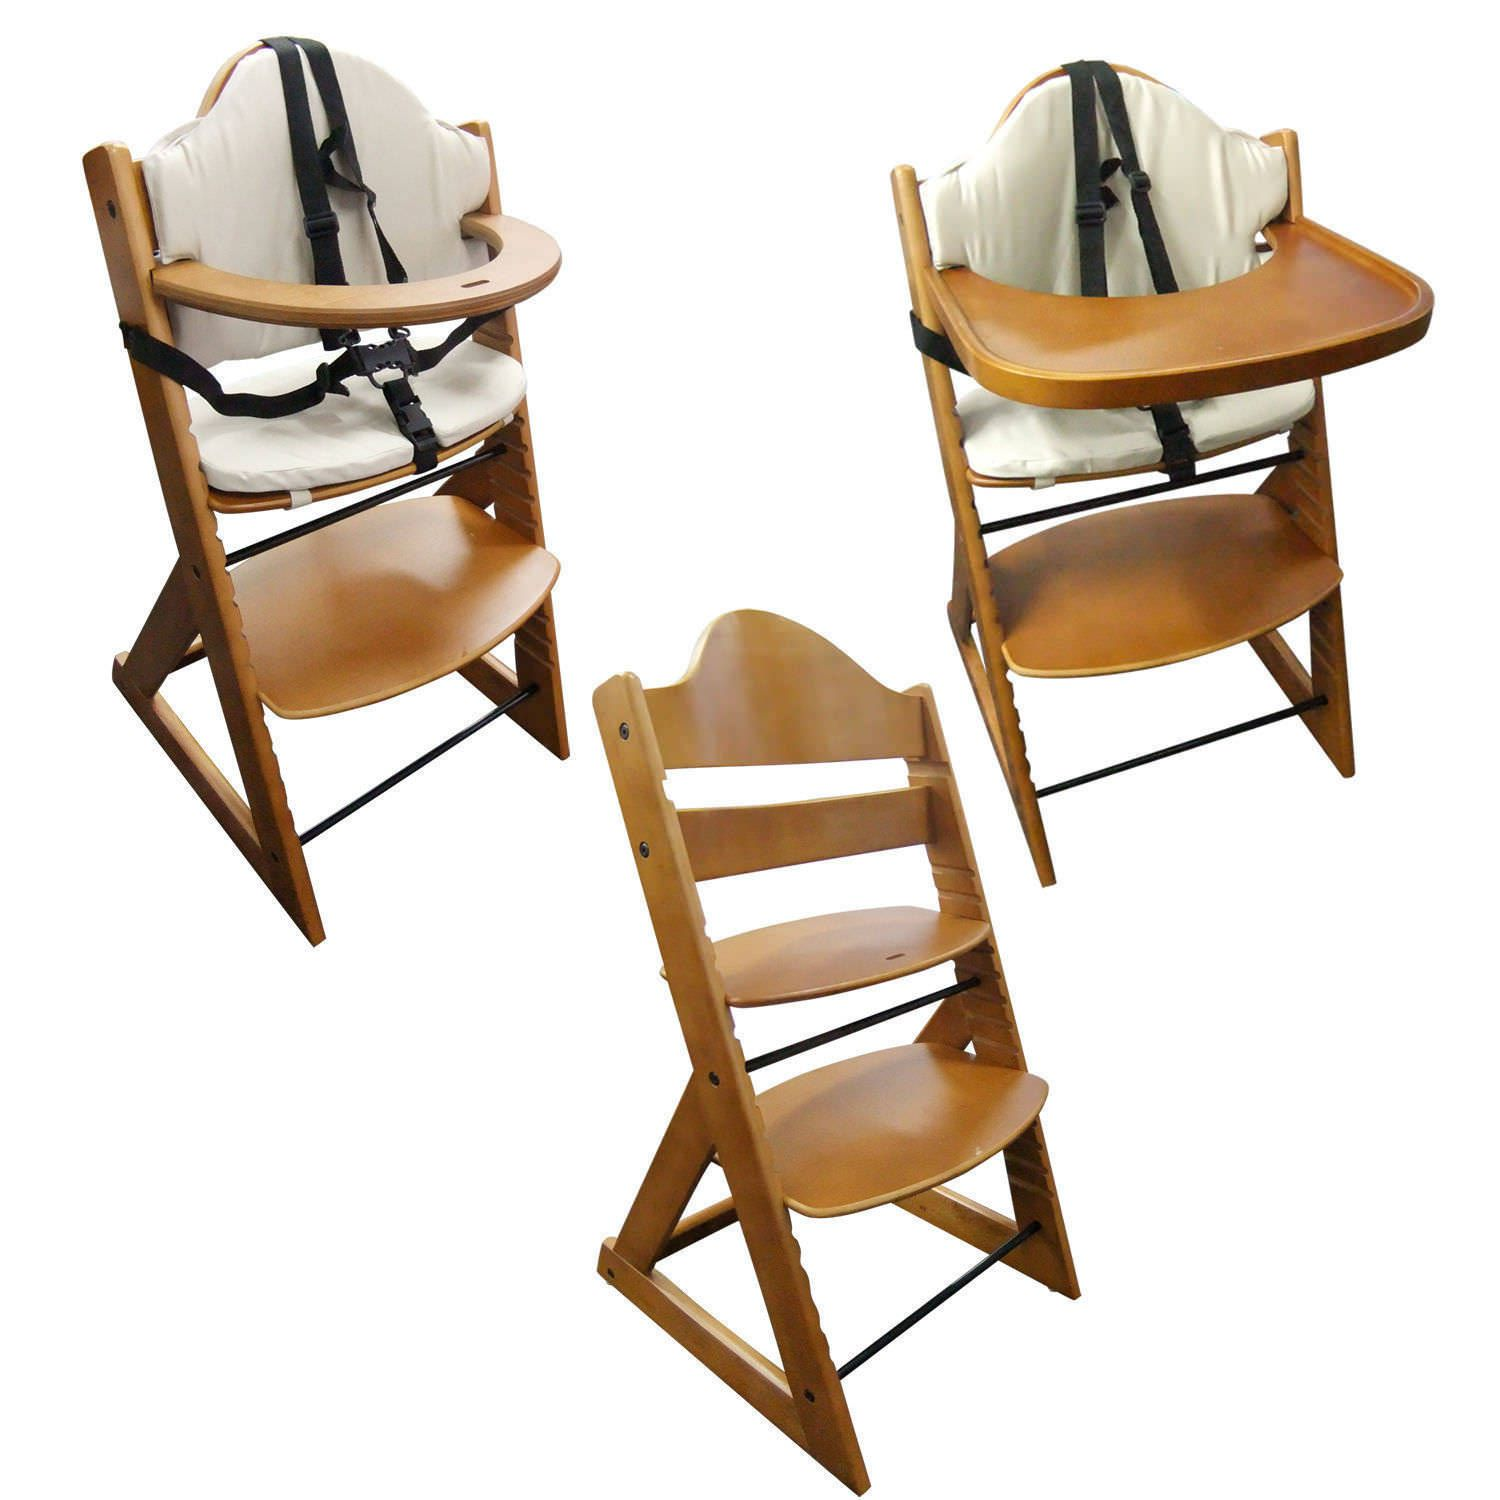 wooden high chair cushion rug under office baby 3in1 with tray and bar teak